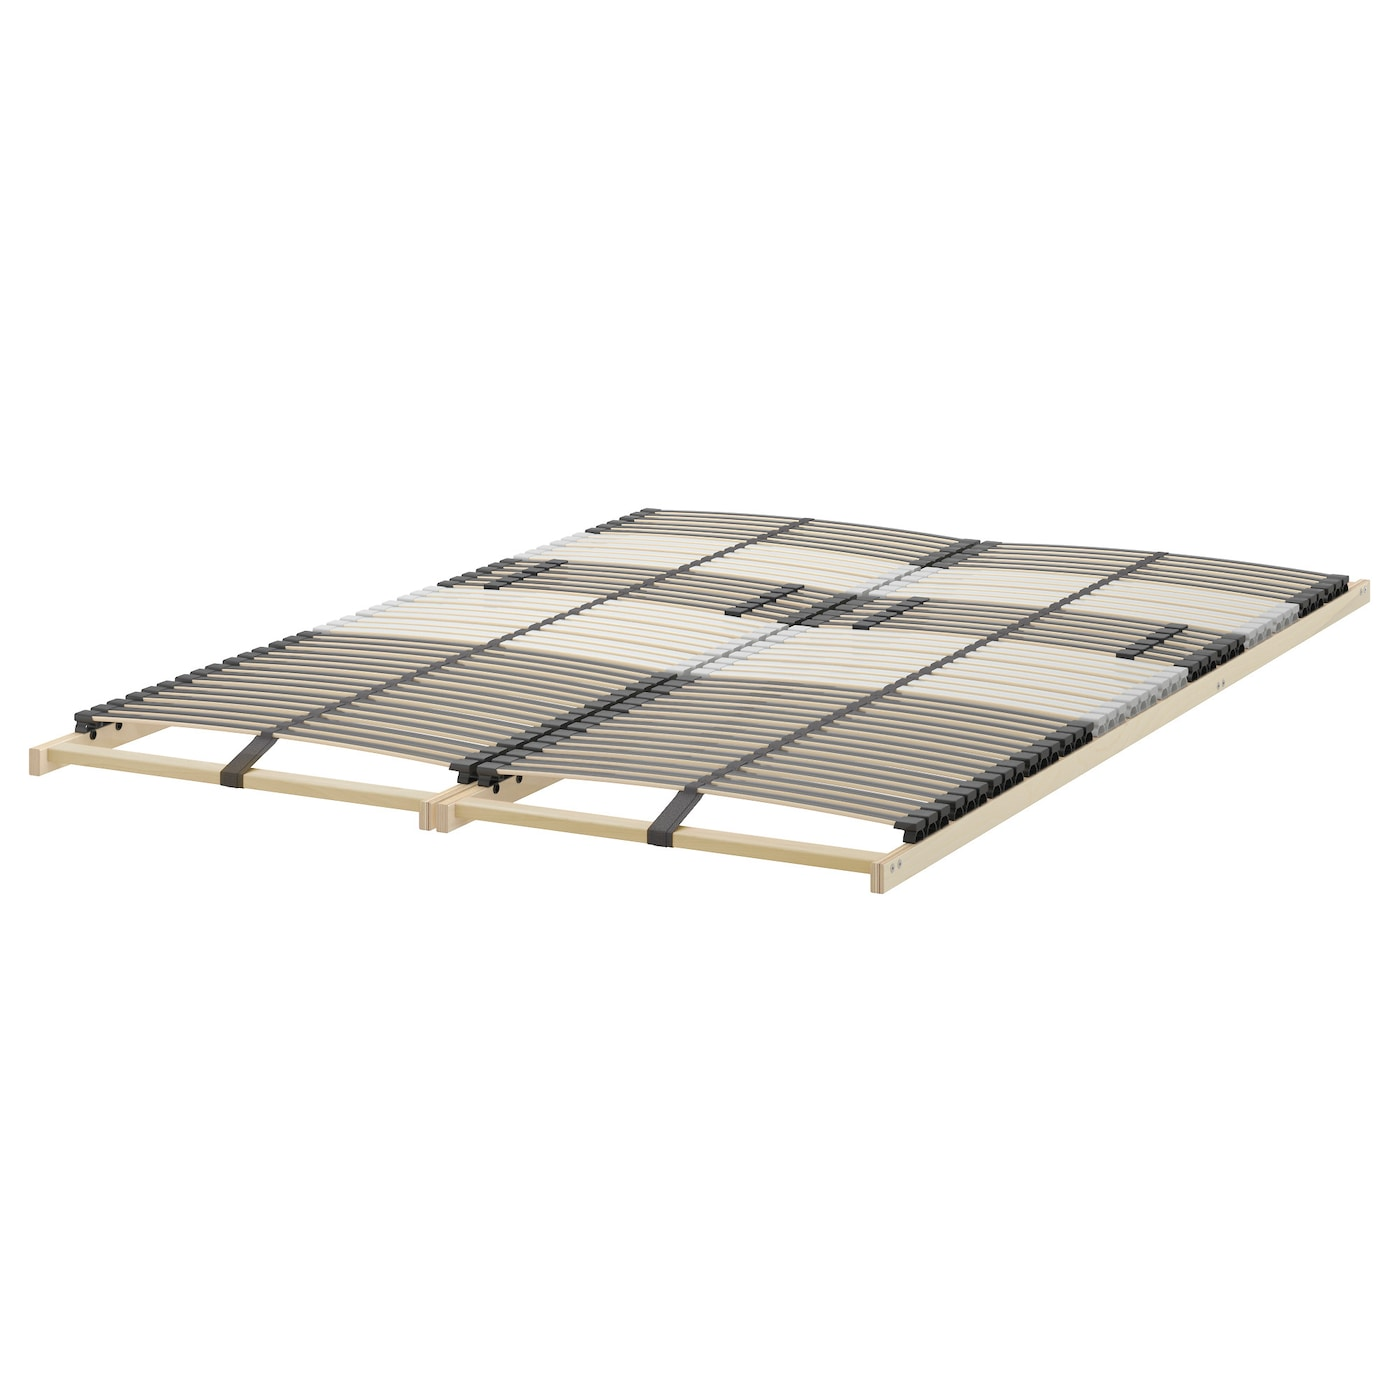 ikea hemnes bed frame made of solid wood which is a hardwearing and warm natural - Ikea Hemnes Bed Frame